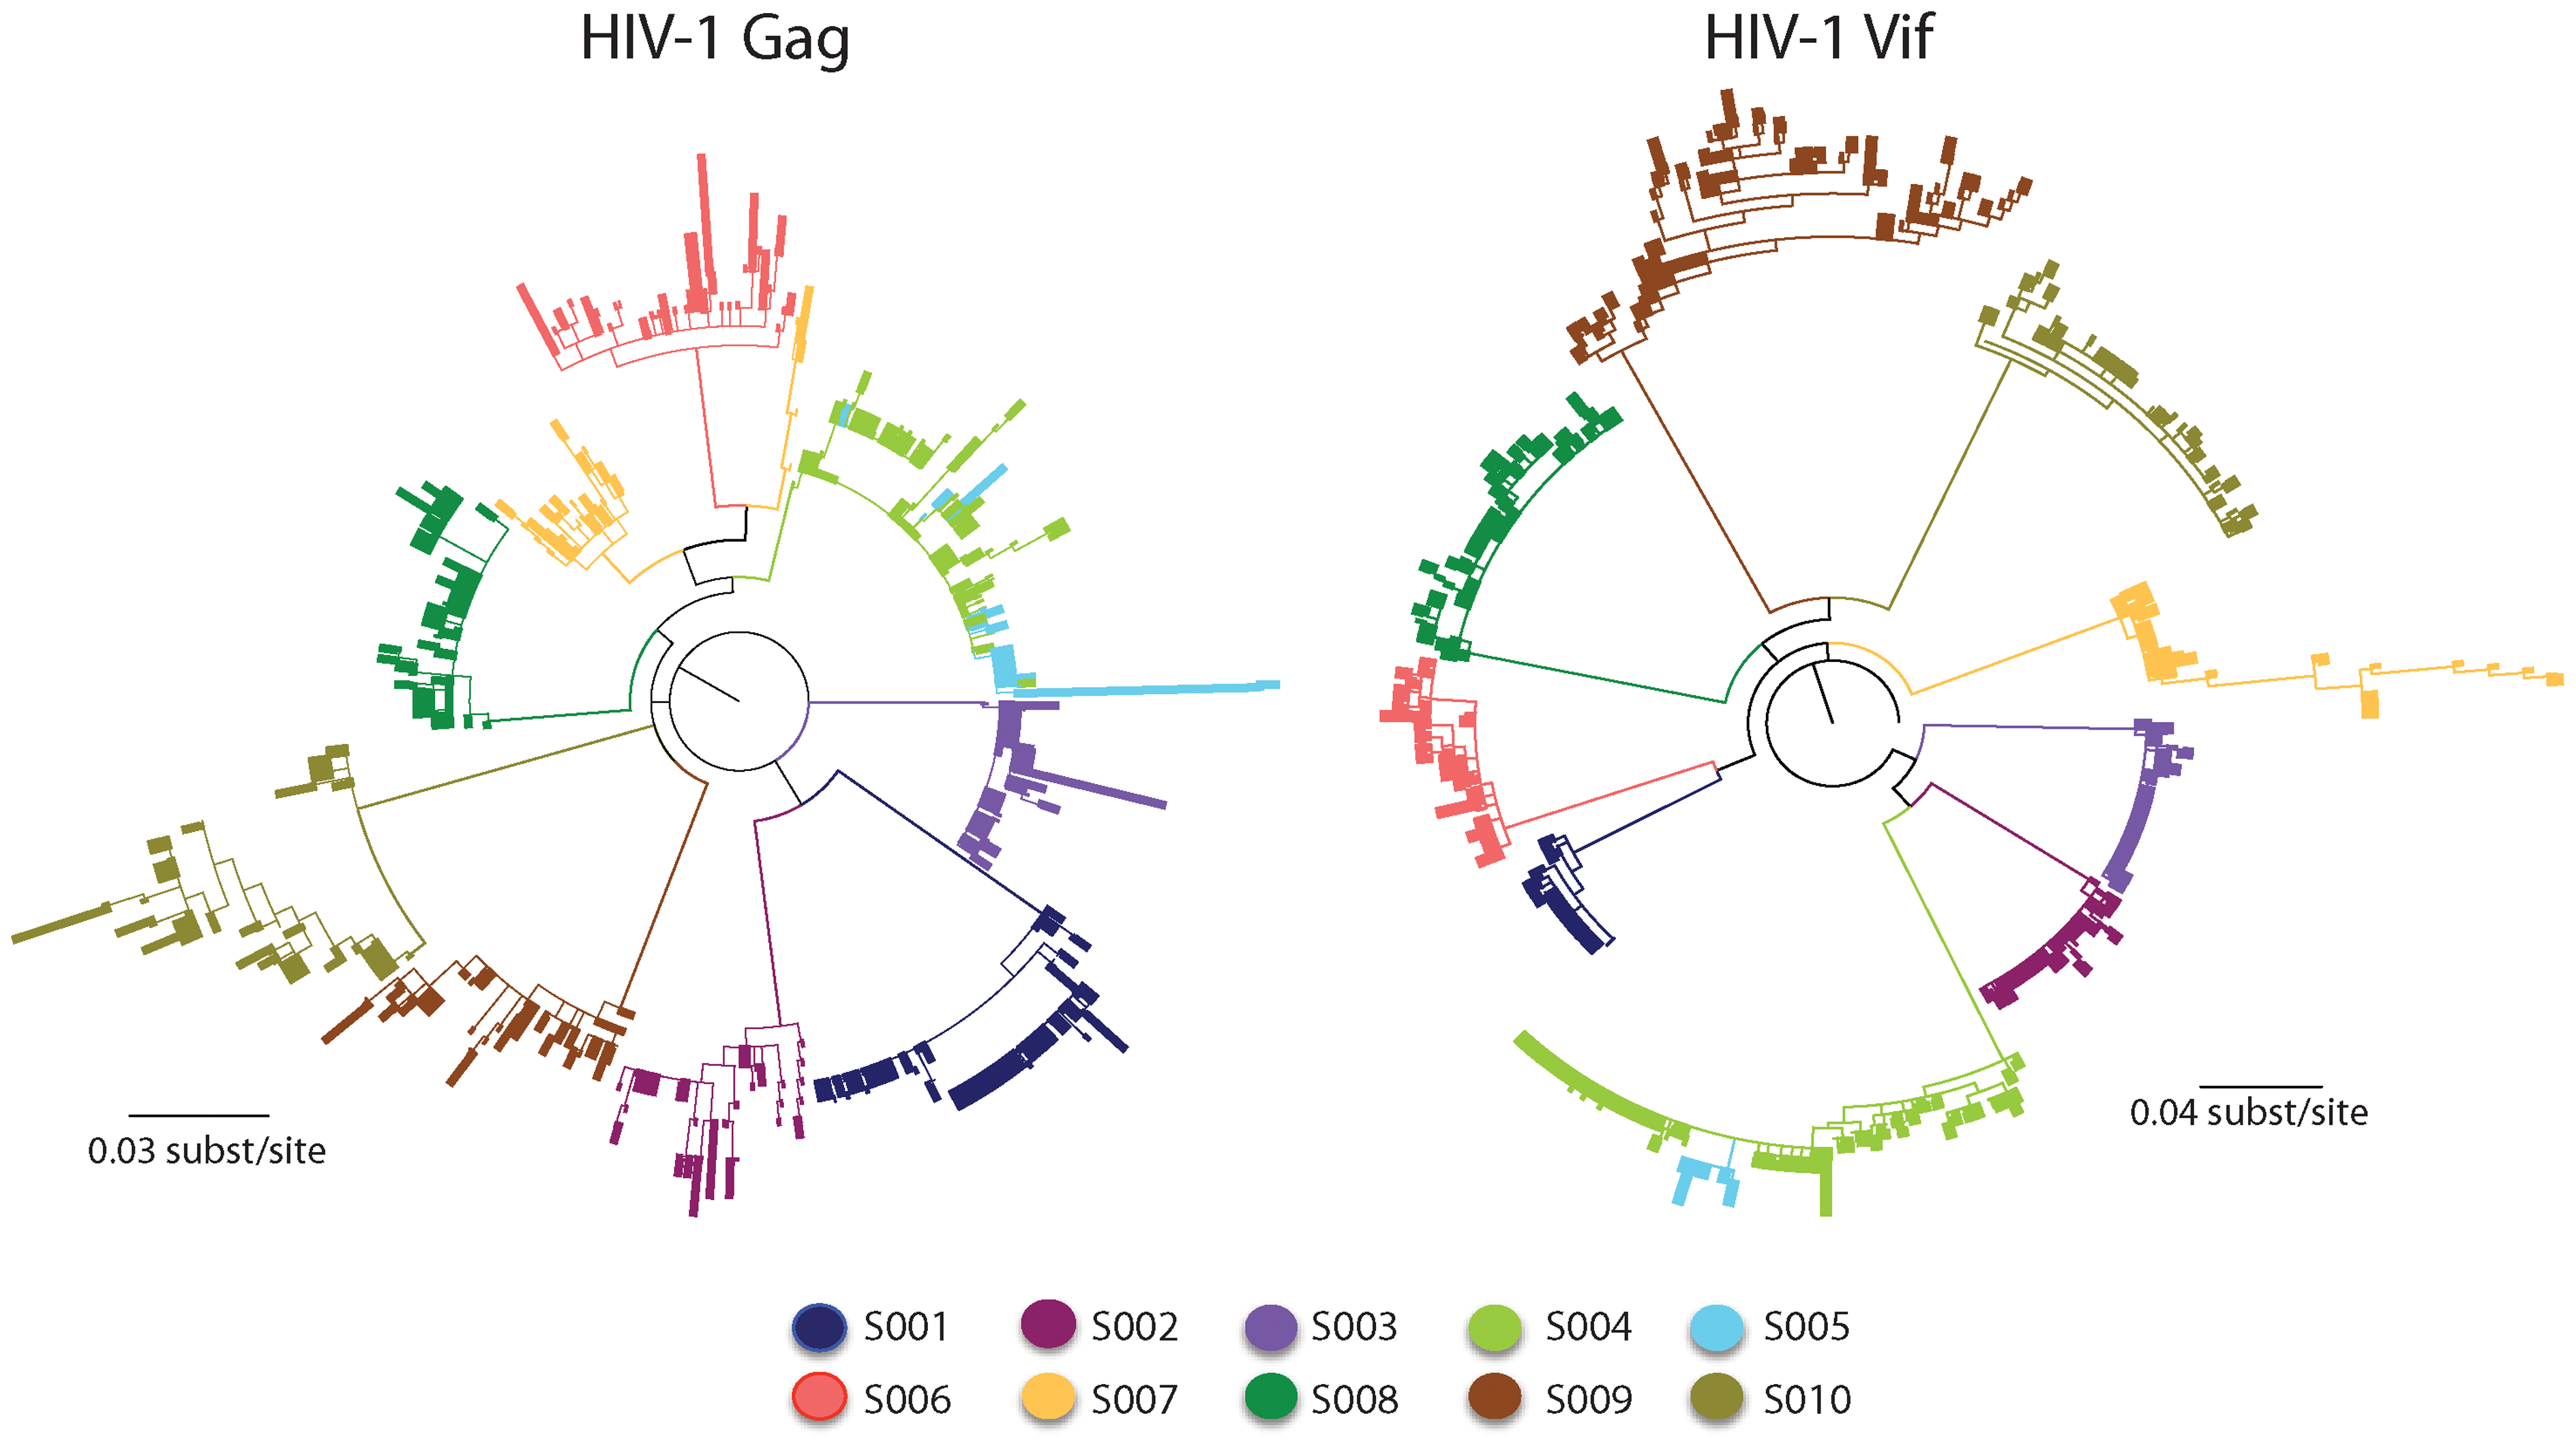 Maximum-likelihood tree for HIV-1 sequences from the patients studied.